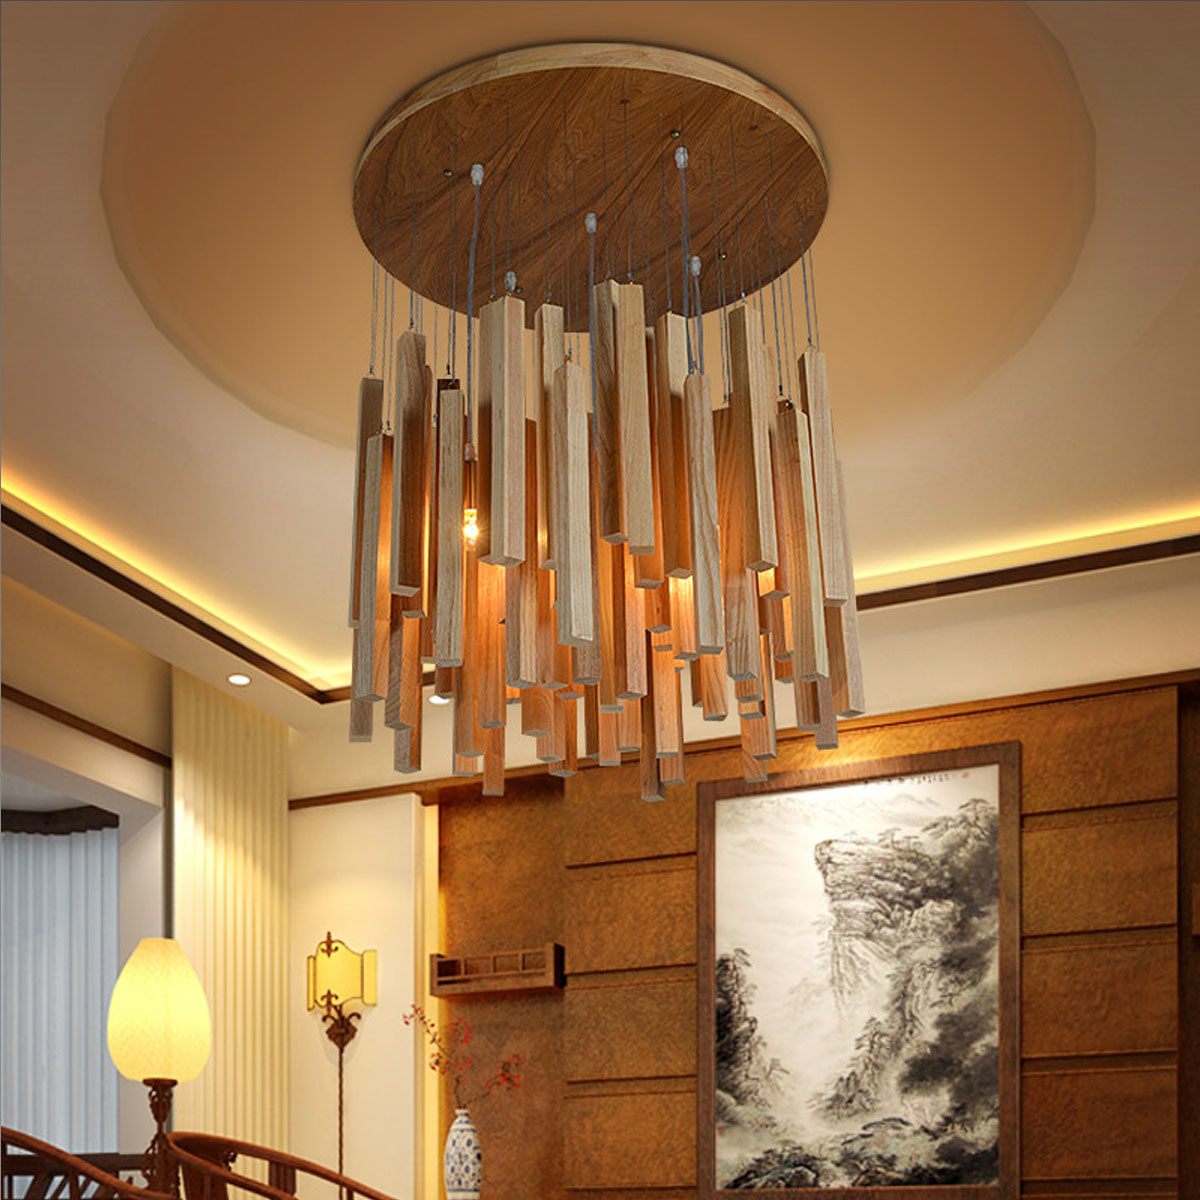 Modern Chandelier Solid Natural Batten Wood Art Creative Dining Room Lighting Decor E27 Max Wattage 40W In Chandeliers From Lights On